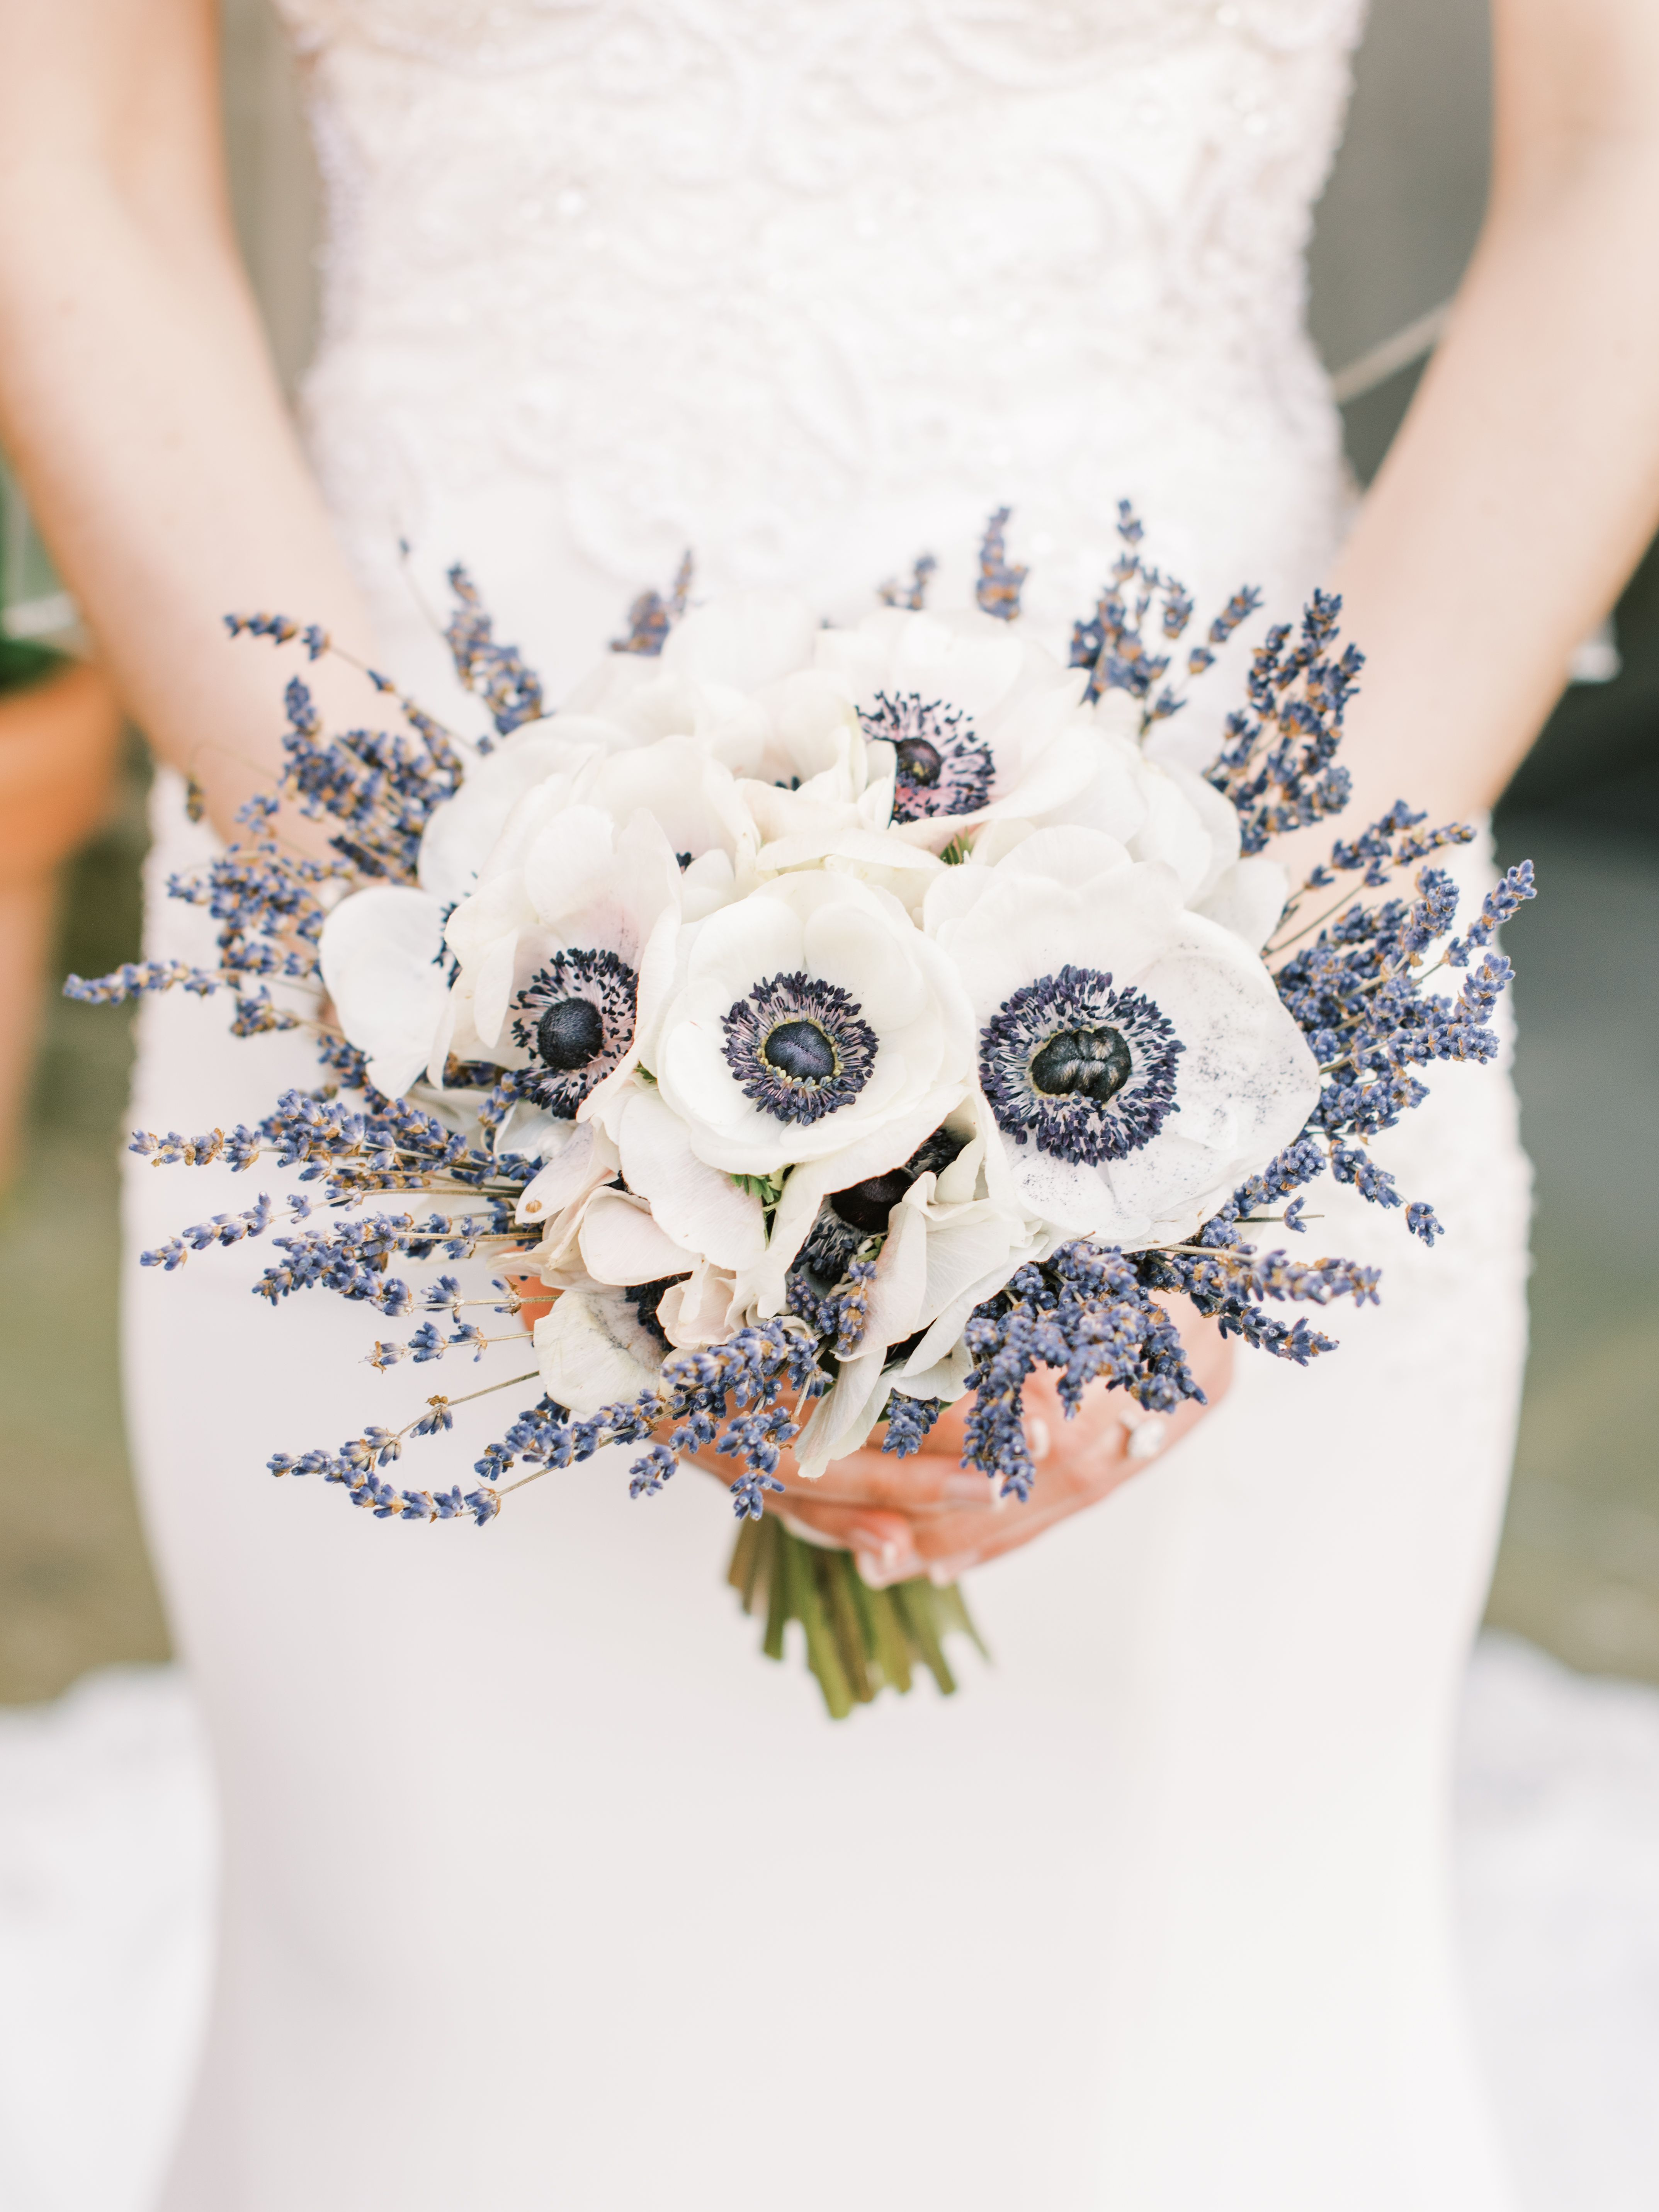 Lavender Inspired Bouquet and White Anemone Flower with